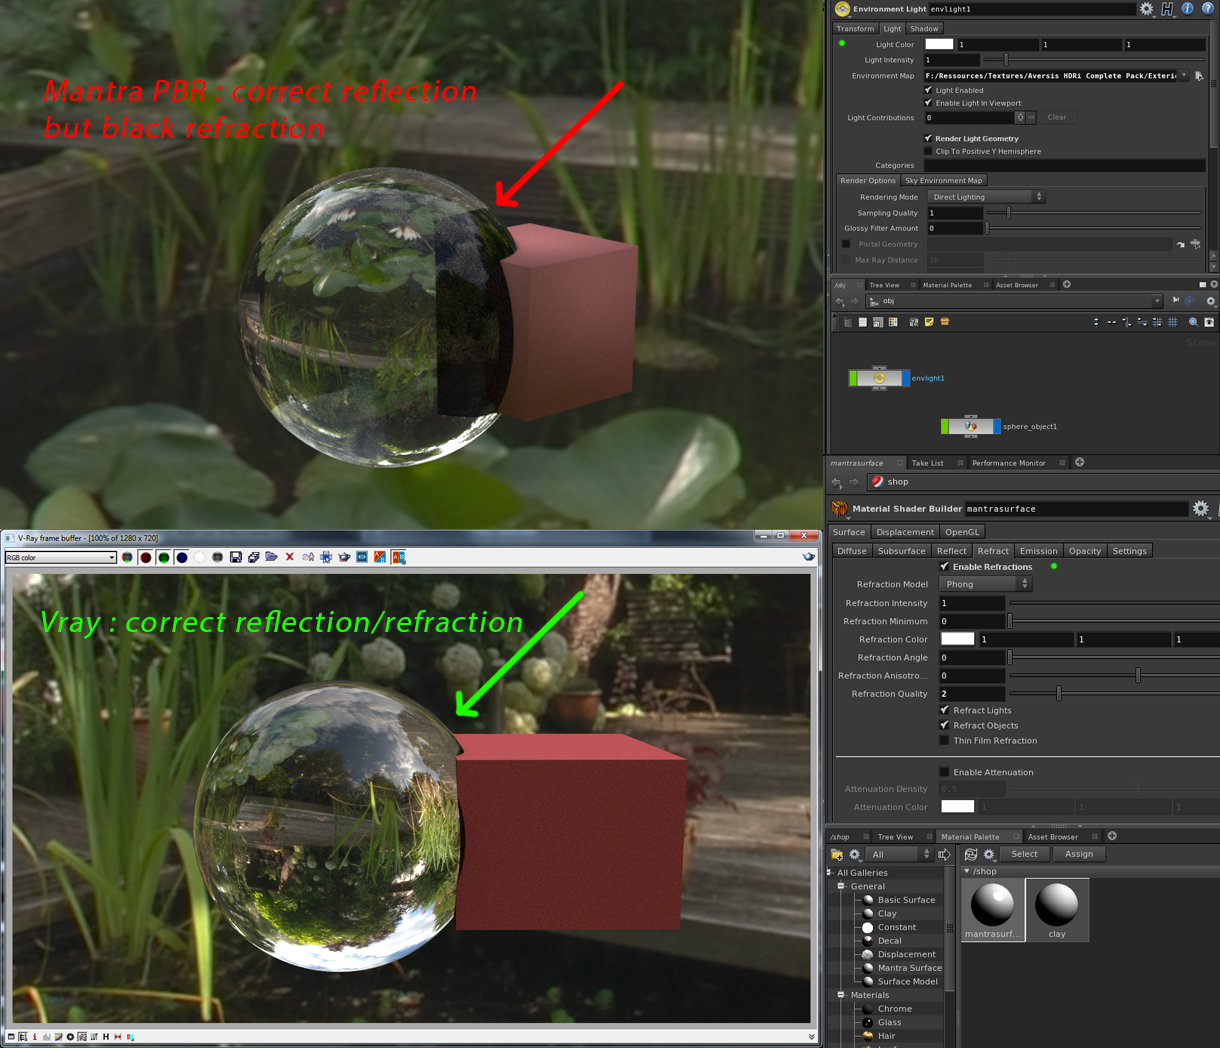 Mantra Black refraction near objects with Fresnel | Forums